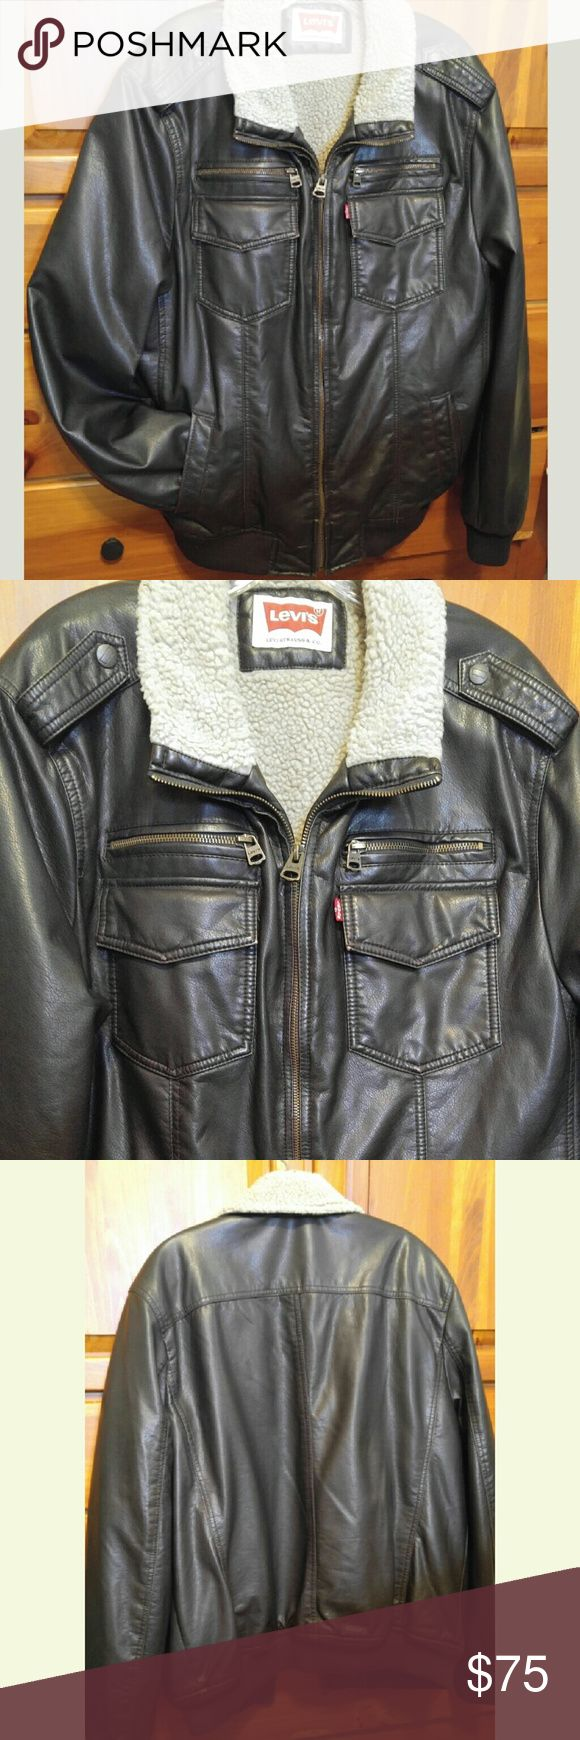 Mens Levi  Bomber Jacket Sherpa lined, immaculate faux leather jacket.  Hip Length.  Realistic grains, not too shiny or too dull. Feels good and warm. This is a total winner.  Thank you for shopping with us Levi's Jackets & Coats Bomber & Varsity